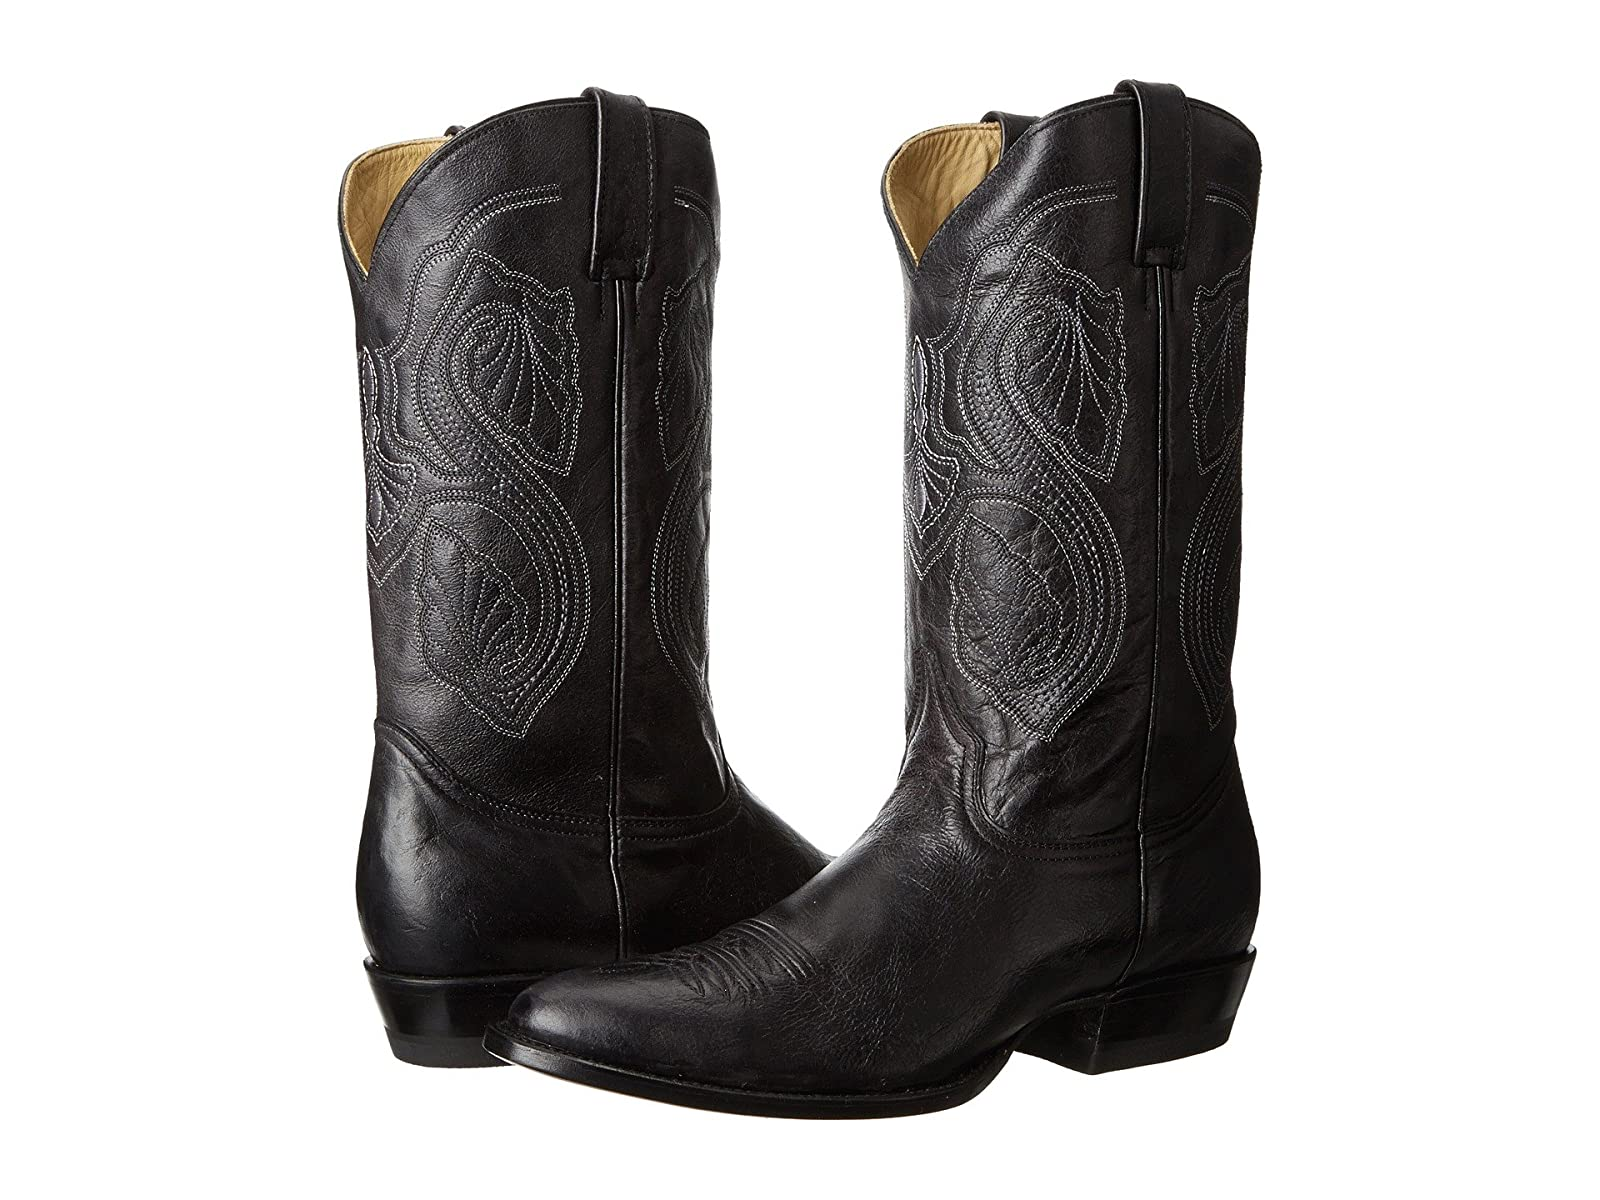 "Stetson 13"" Shaft Single Welt Round Toe BootCheap and distinctive eye-catching shoes"